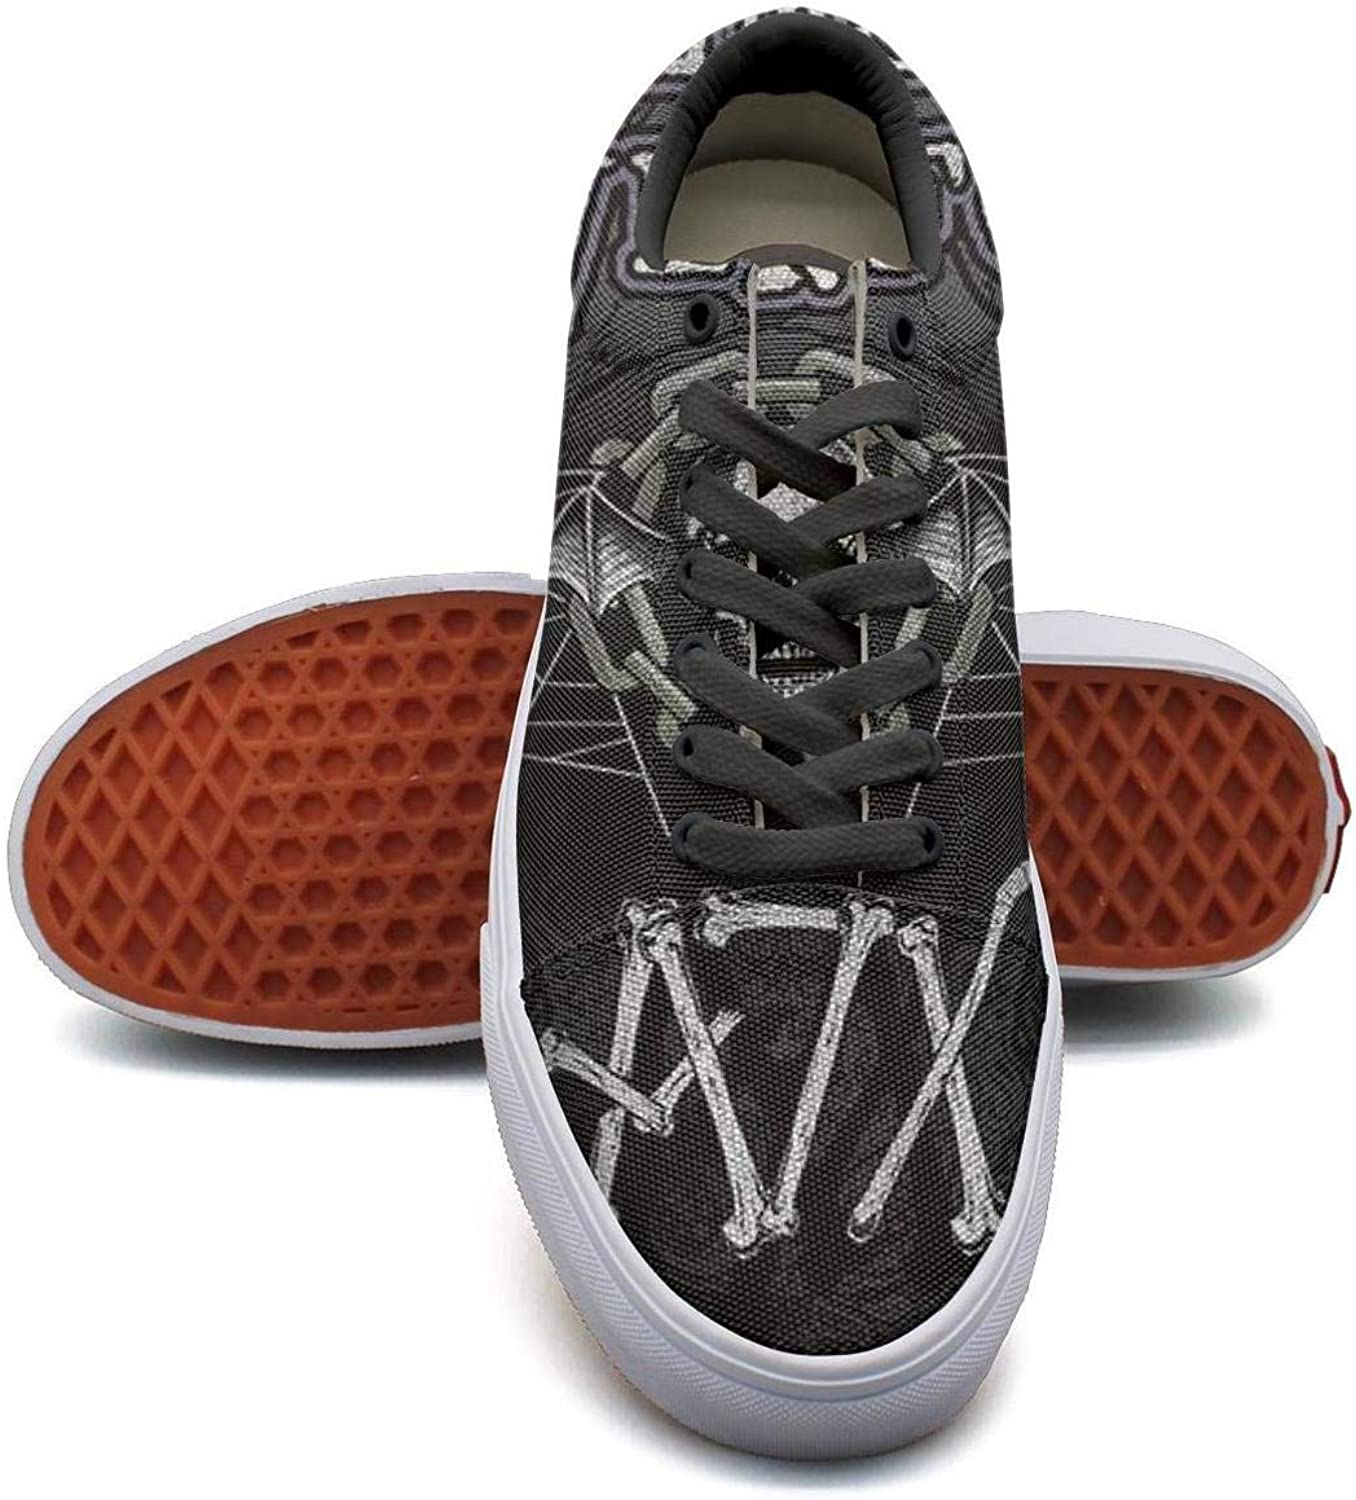 Tennis Shoes for Women Breathable Avenged-Sevenfold-United-States Running Shoes